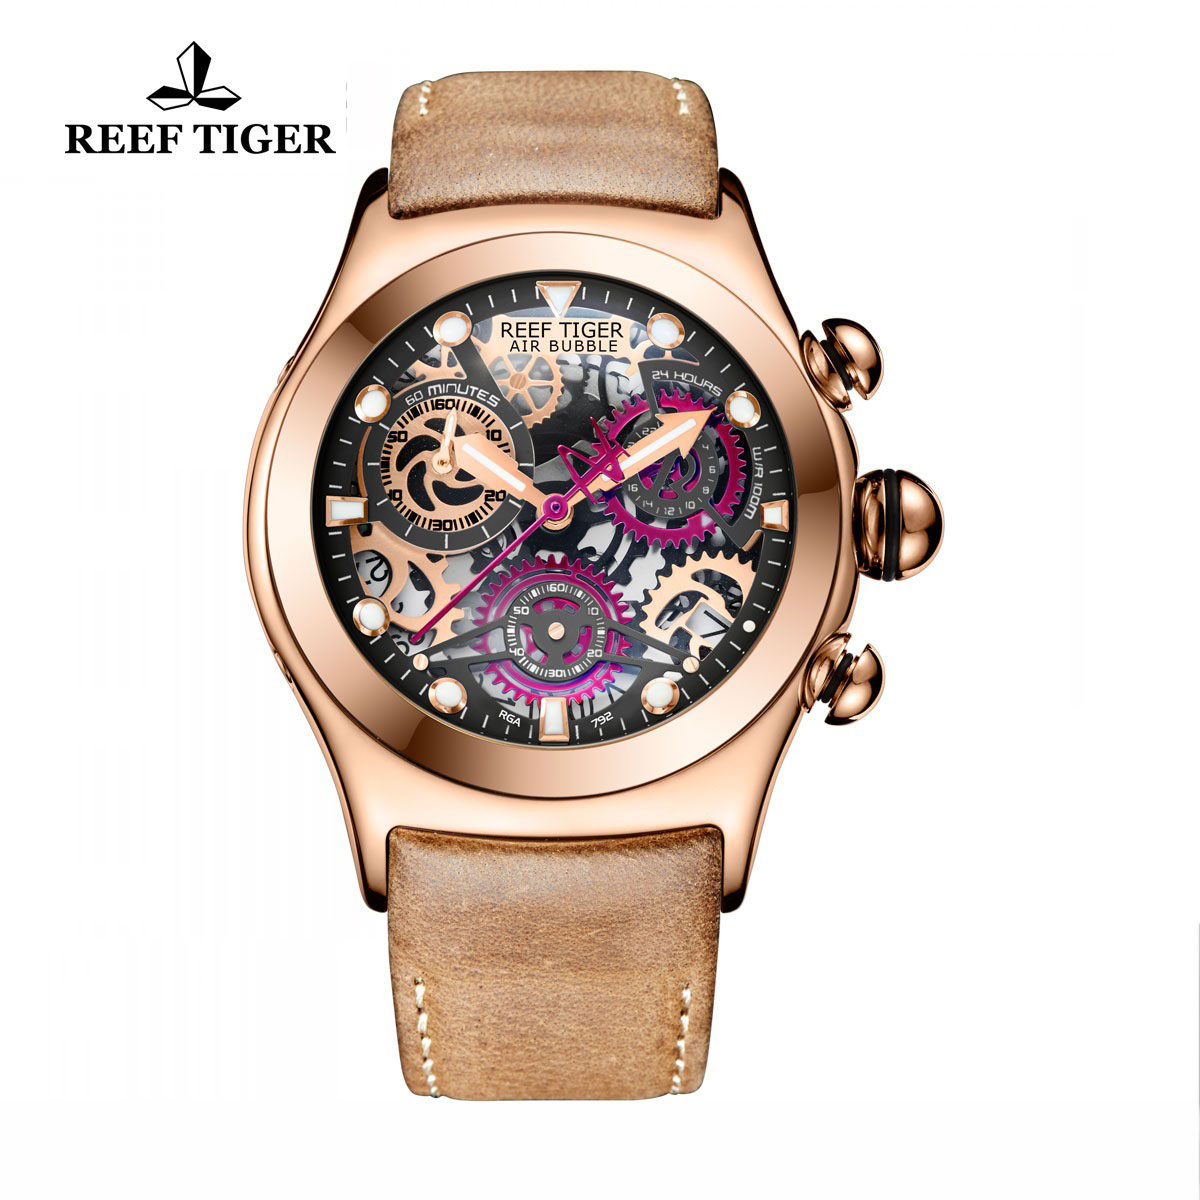 Reef Tiger Big Bang Sport Casual Watches Chronograph Watch Rose Gold Case Skeleton Dial RGA792-PBBR